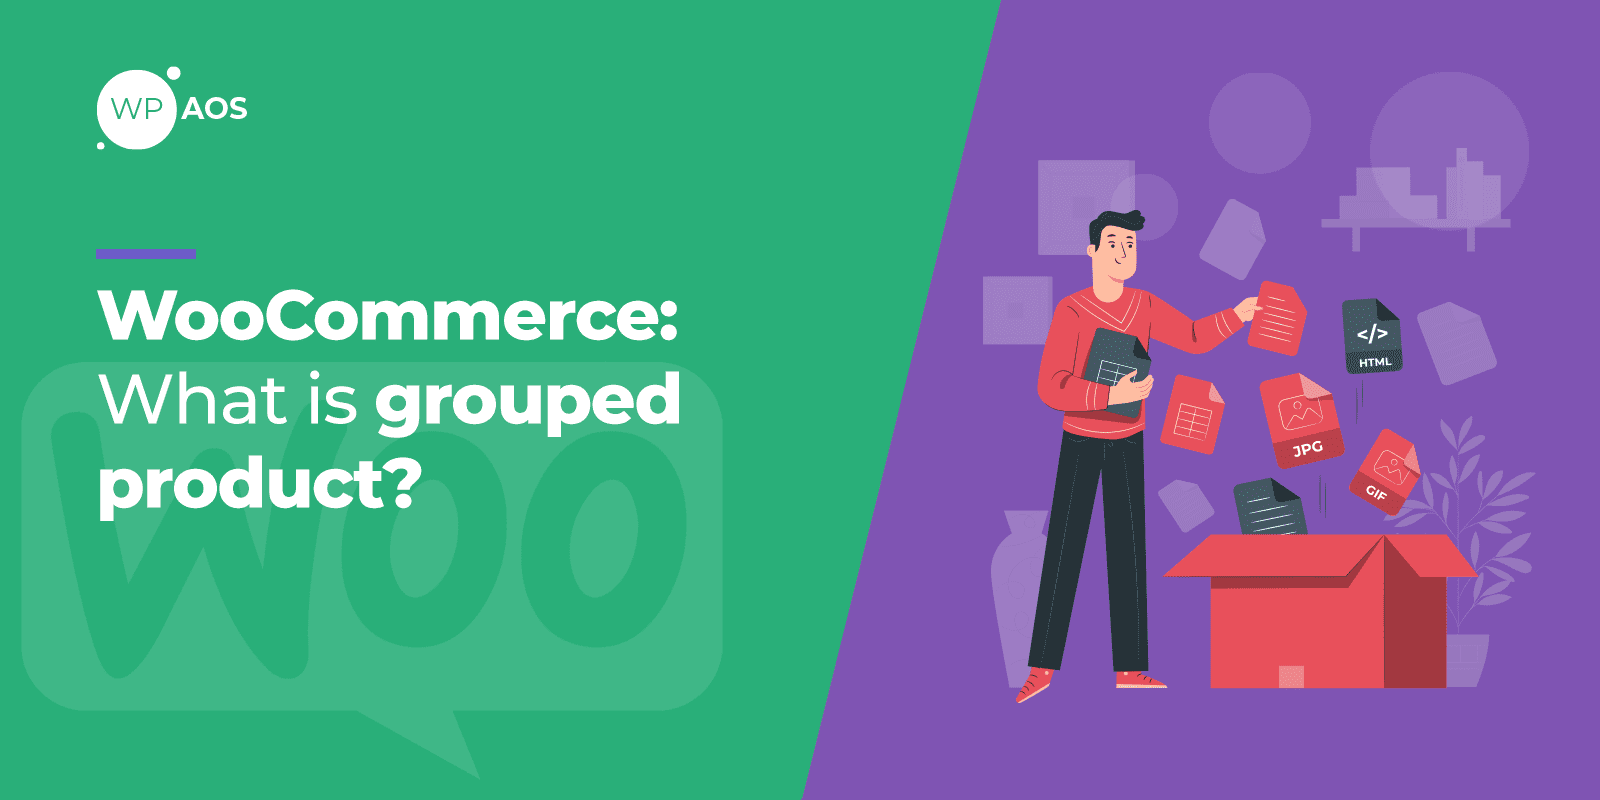 WooCommerce Grouped Products, WordPress Maintenance, wpaos